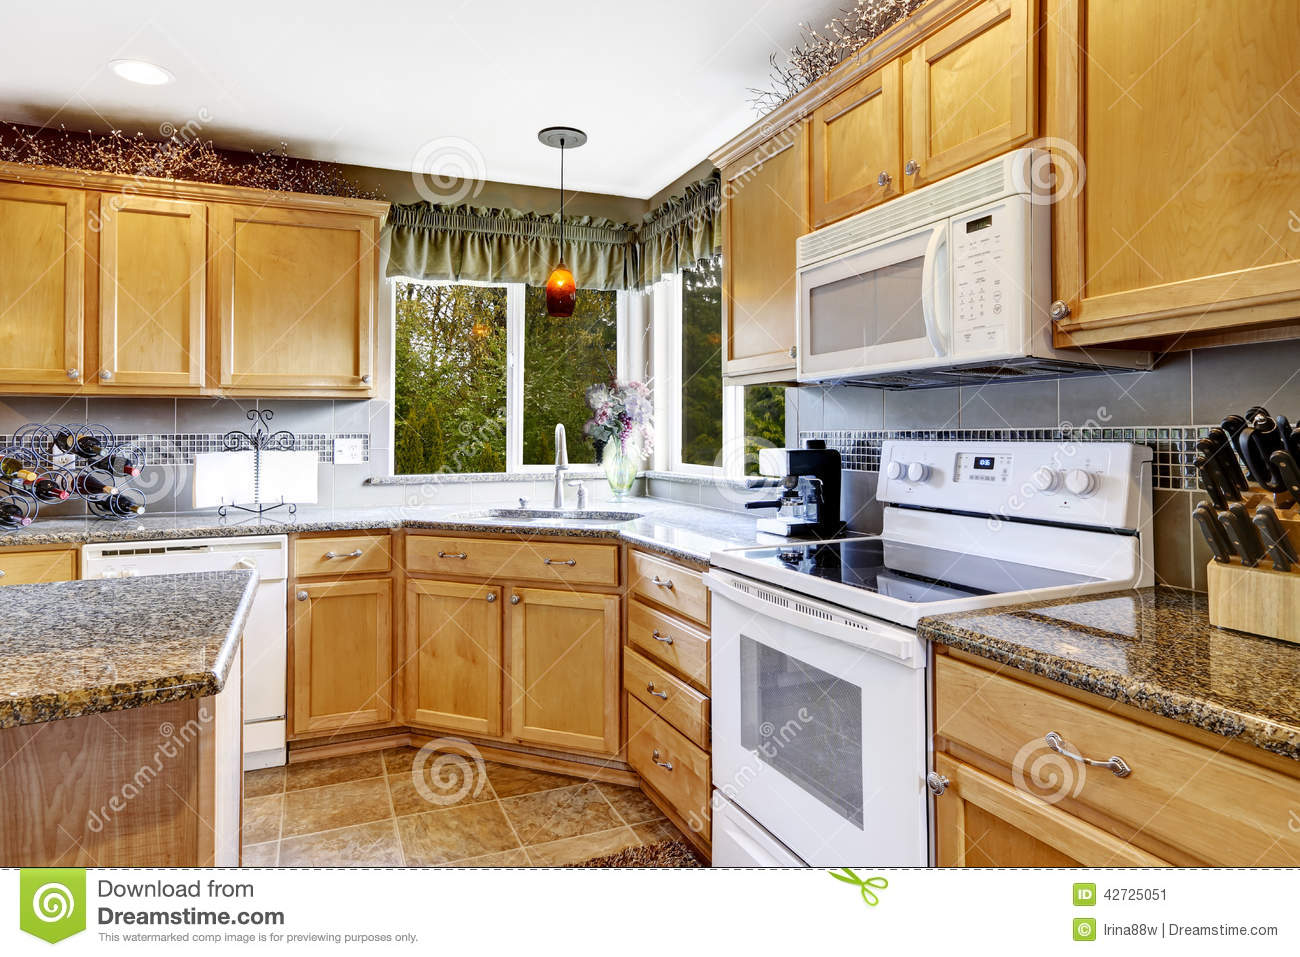 Brown Kitchen Cabinets With White Appliances Bright Kitchen Room Interior With White Appliances Stock